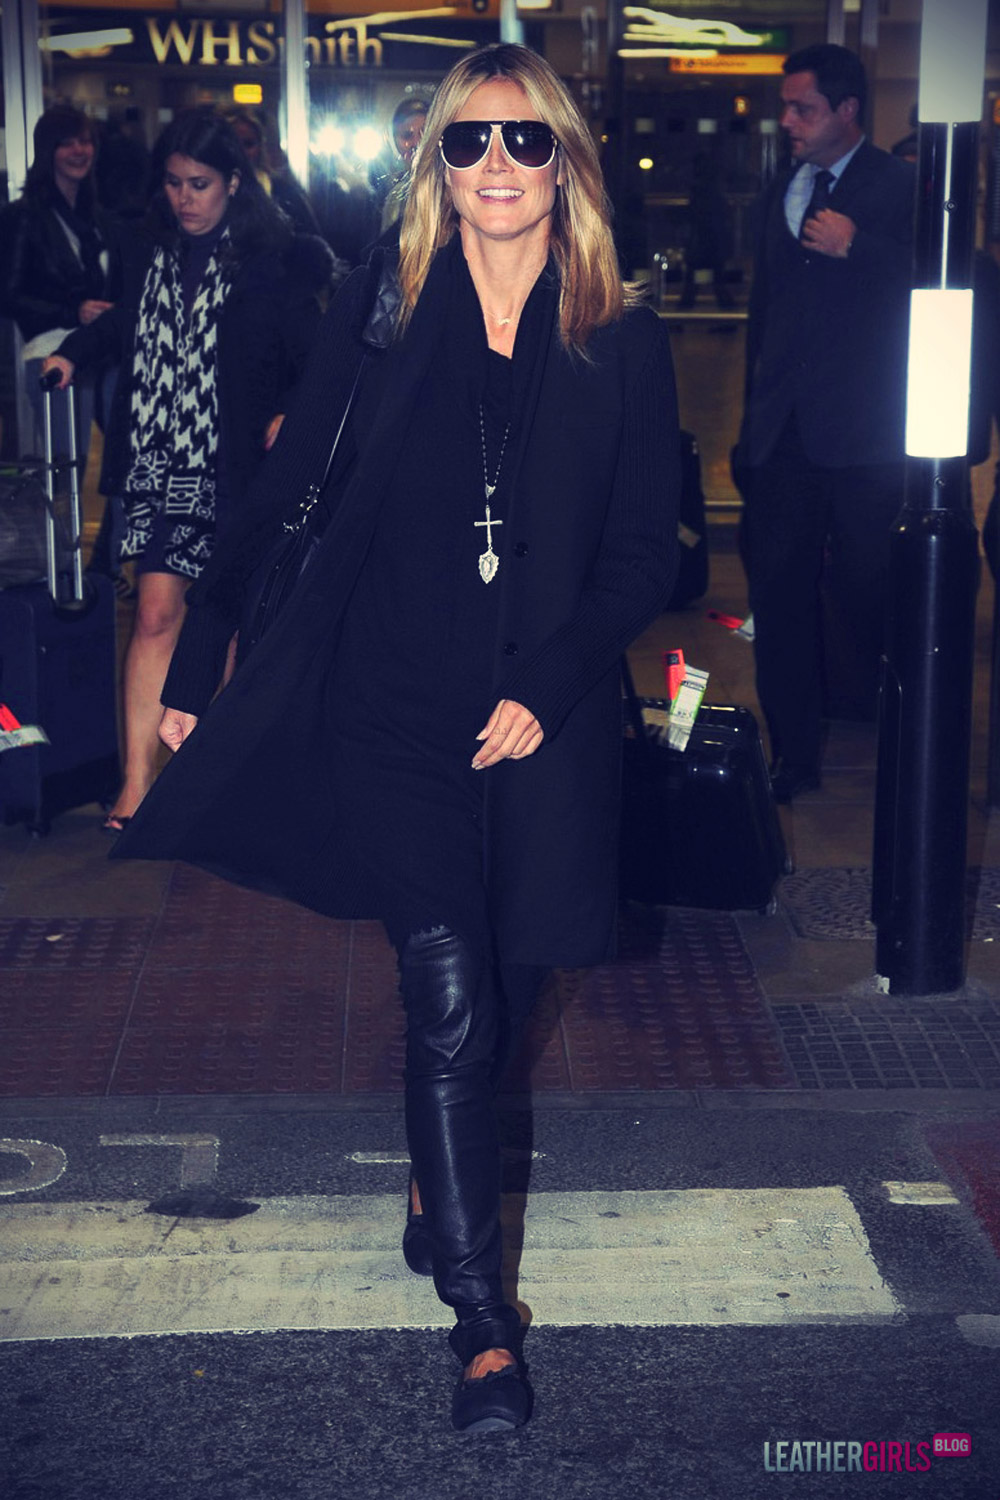 Heidi Klum arrives back at her hotel after a busy day out